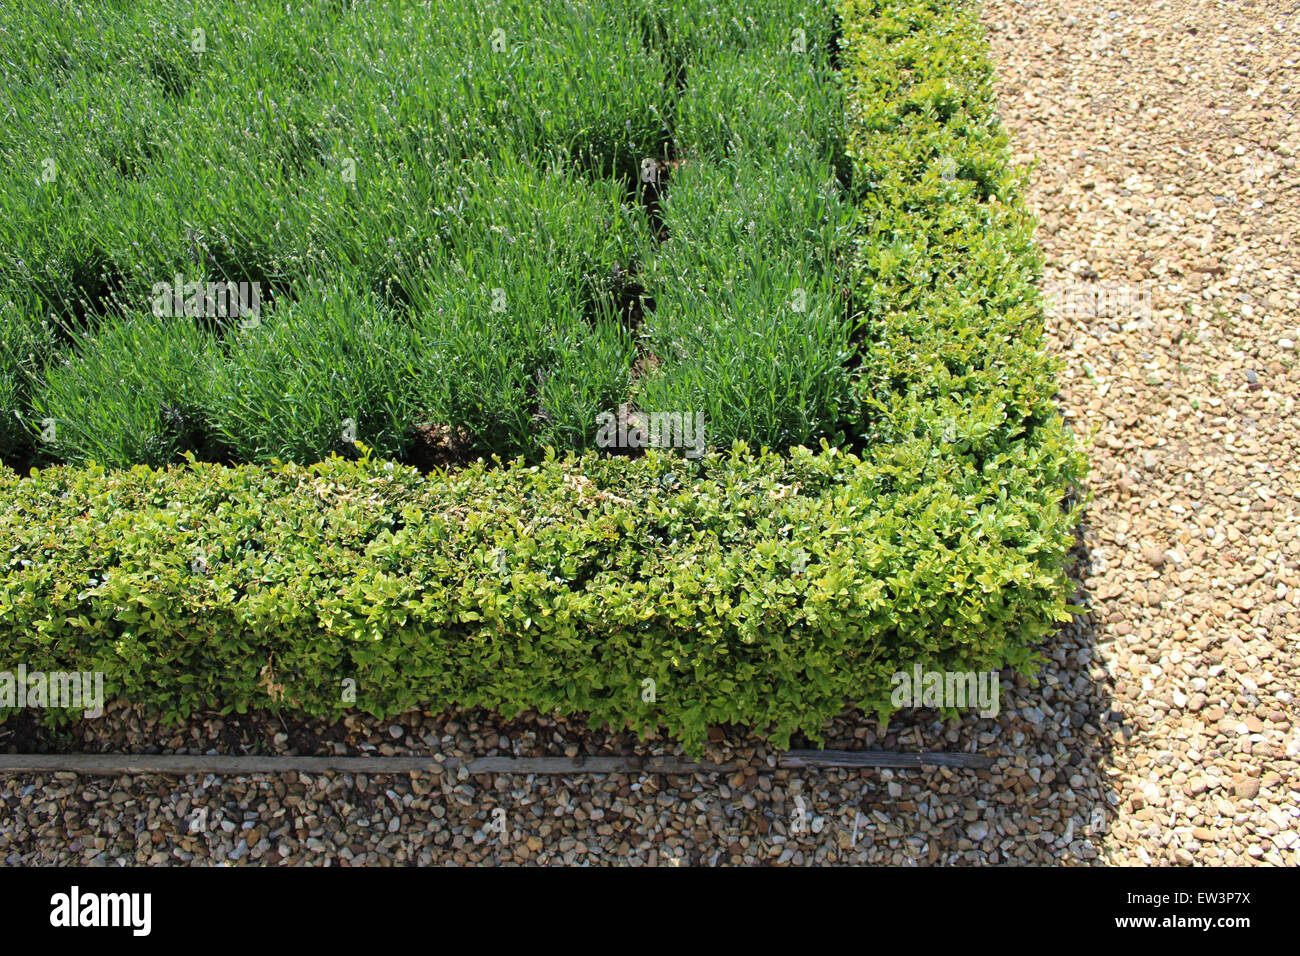 Boxwood Formal Stock Photos & Boxwood Formal Stock Images - Alamy on